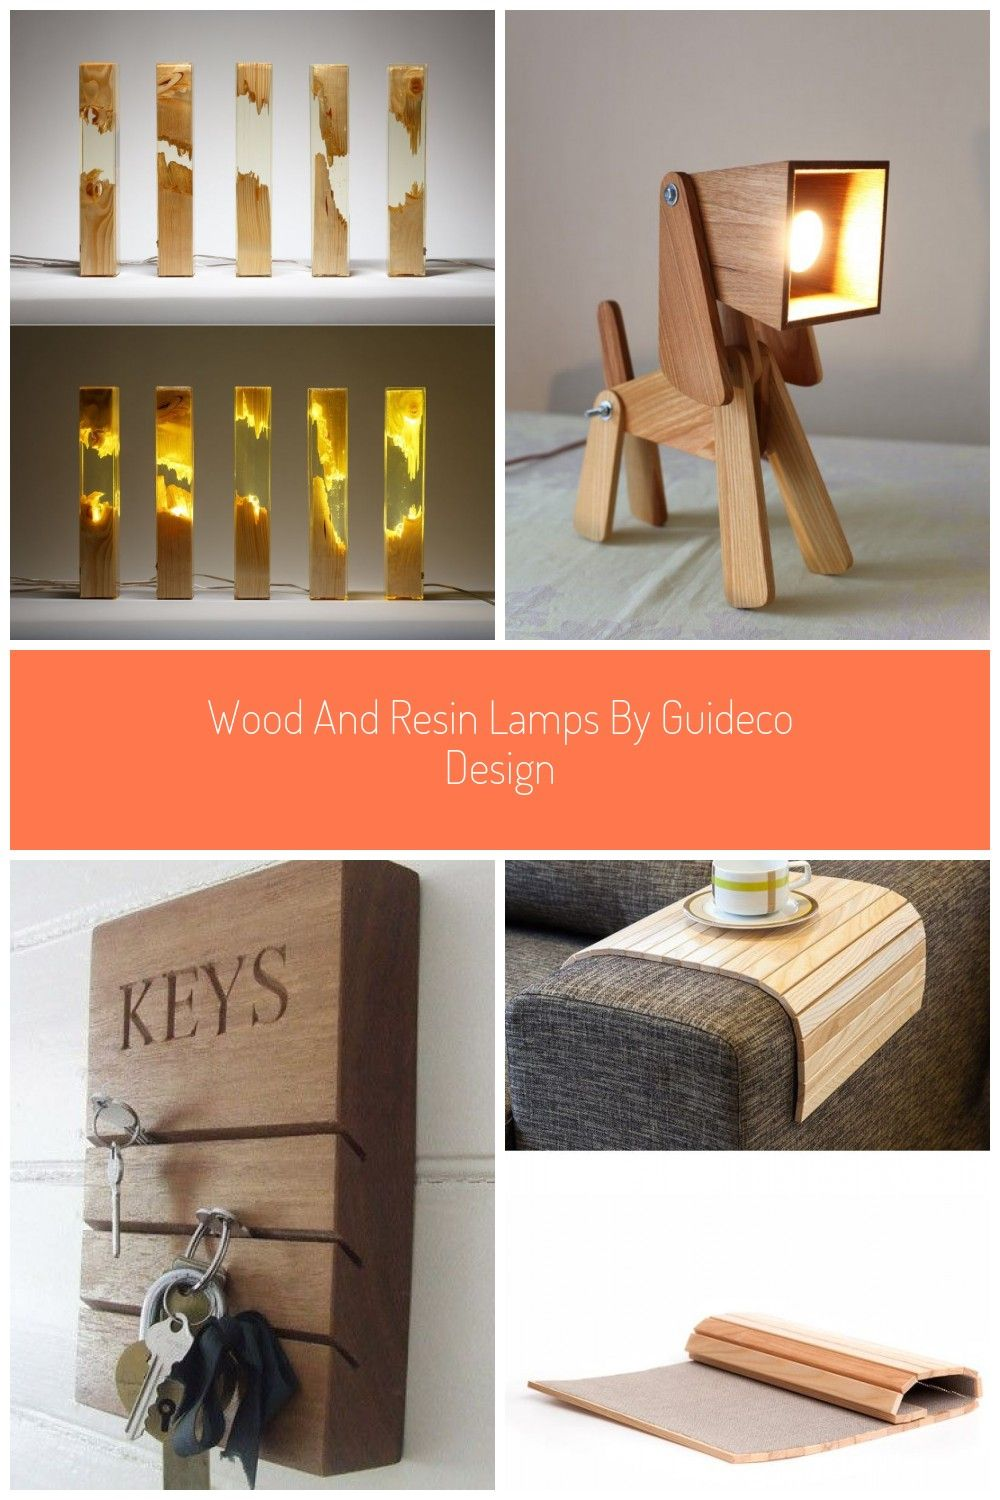 Handcrafted by artist & graphic designer Ioan Stanean of Guideco Design, these classy transparent #lamps are made of pine wood & transparent epoxy resin. They provide delightful illumination & also adds a unique, contemporary touch to any interior. #lighting #tablelamp #liveedgelamp #wood design